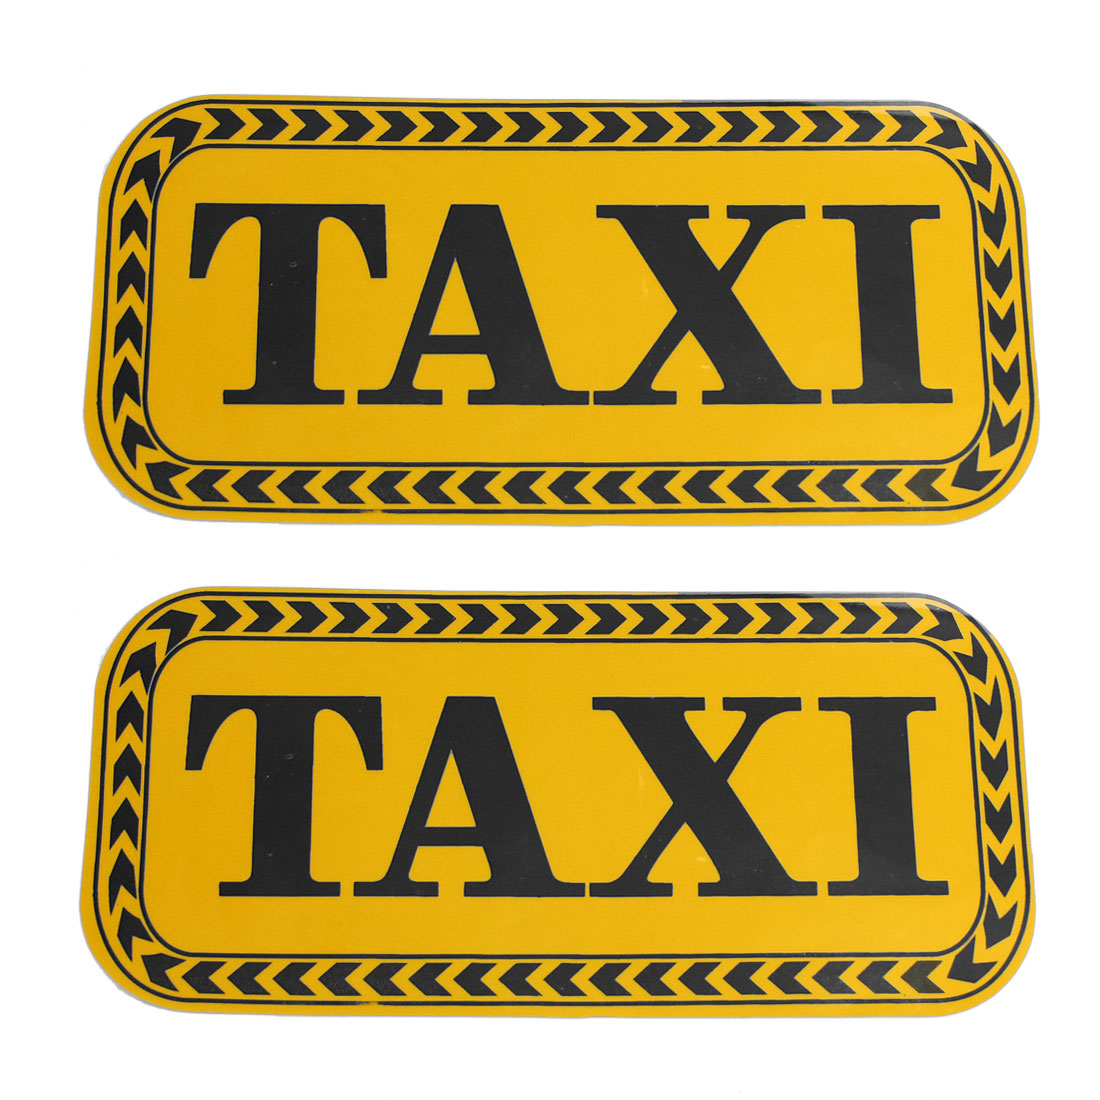 2 Pcs Yellow Black Vinyl TAXI Pattern Decorating Car Sticker Decor